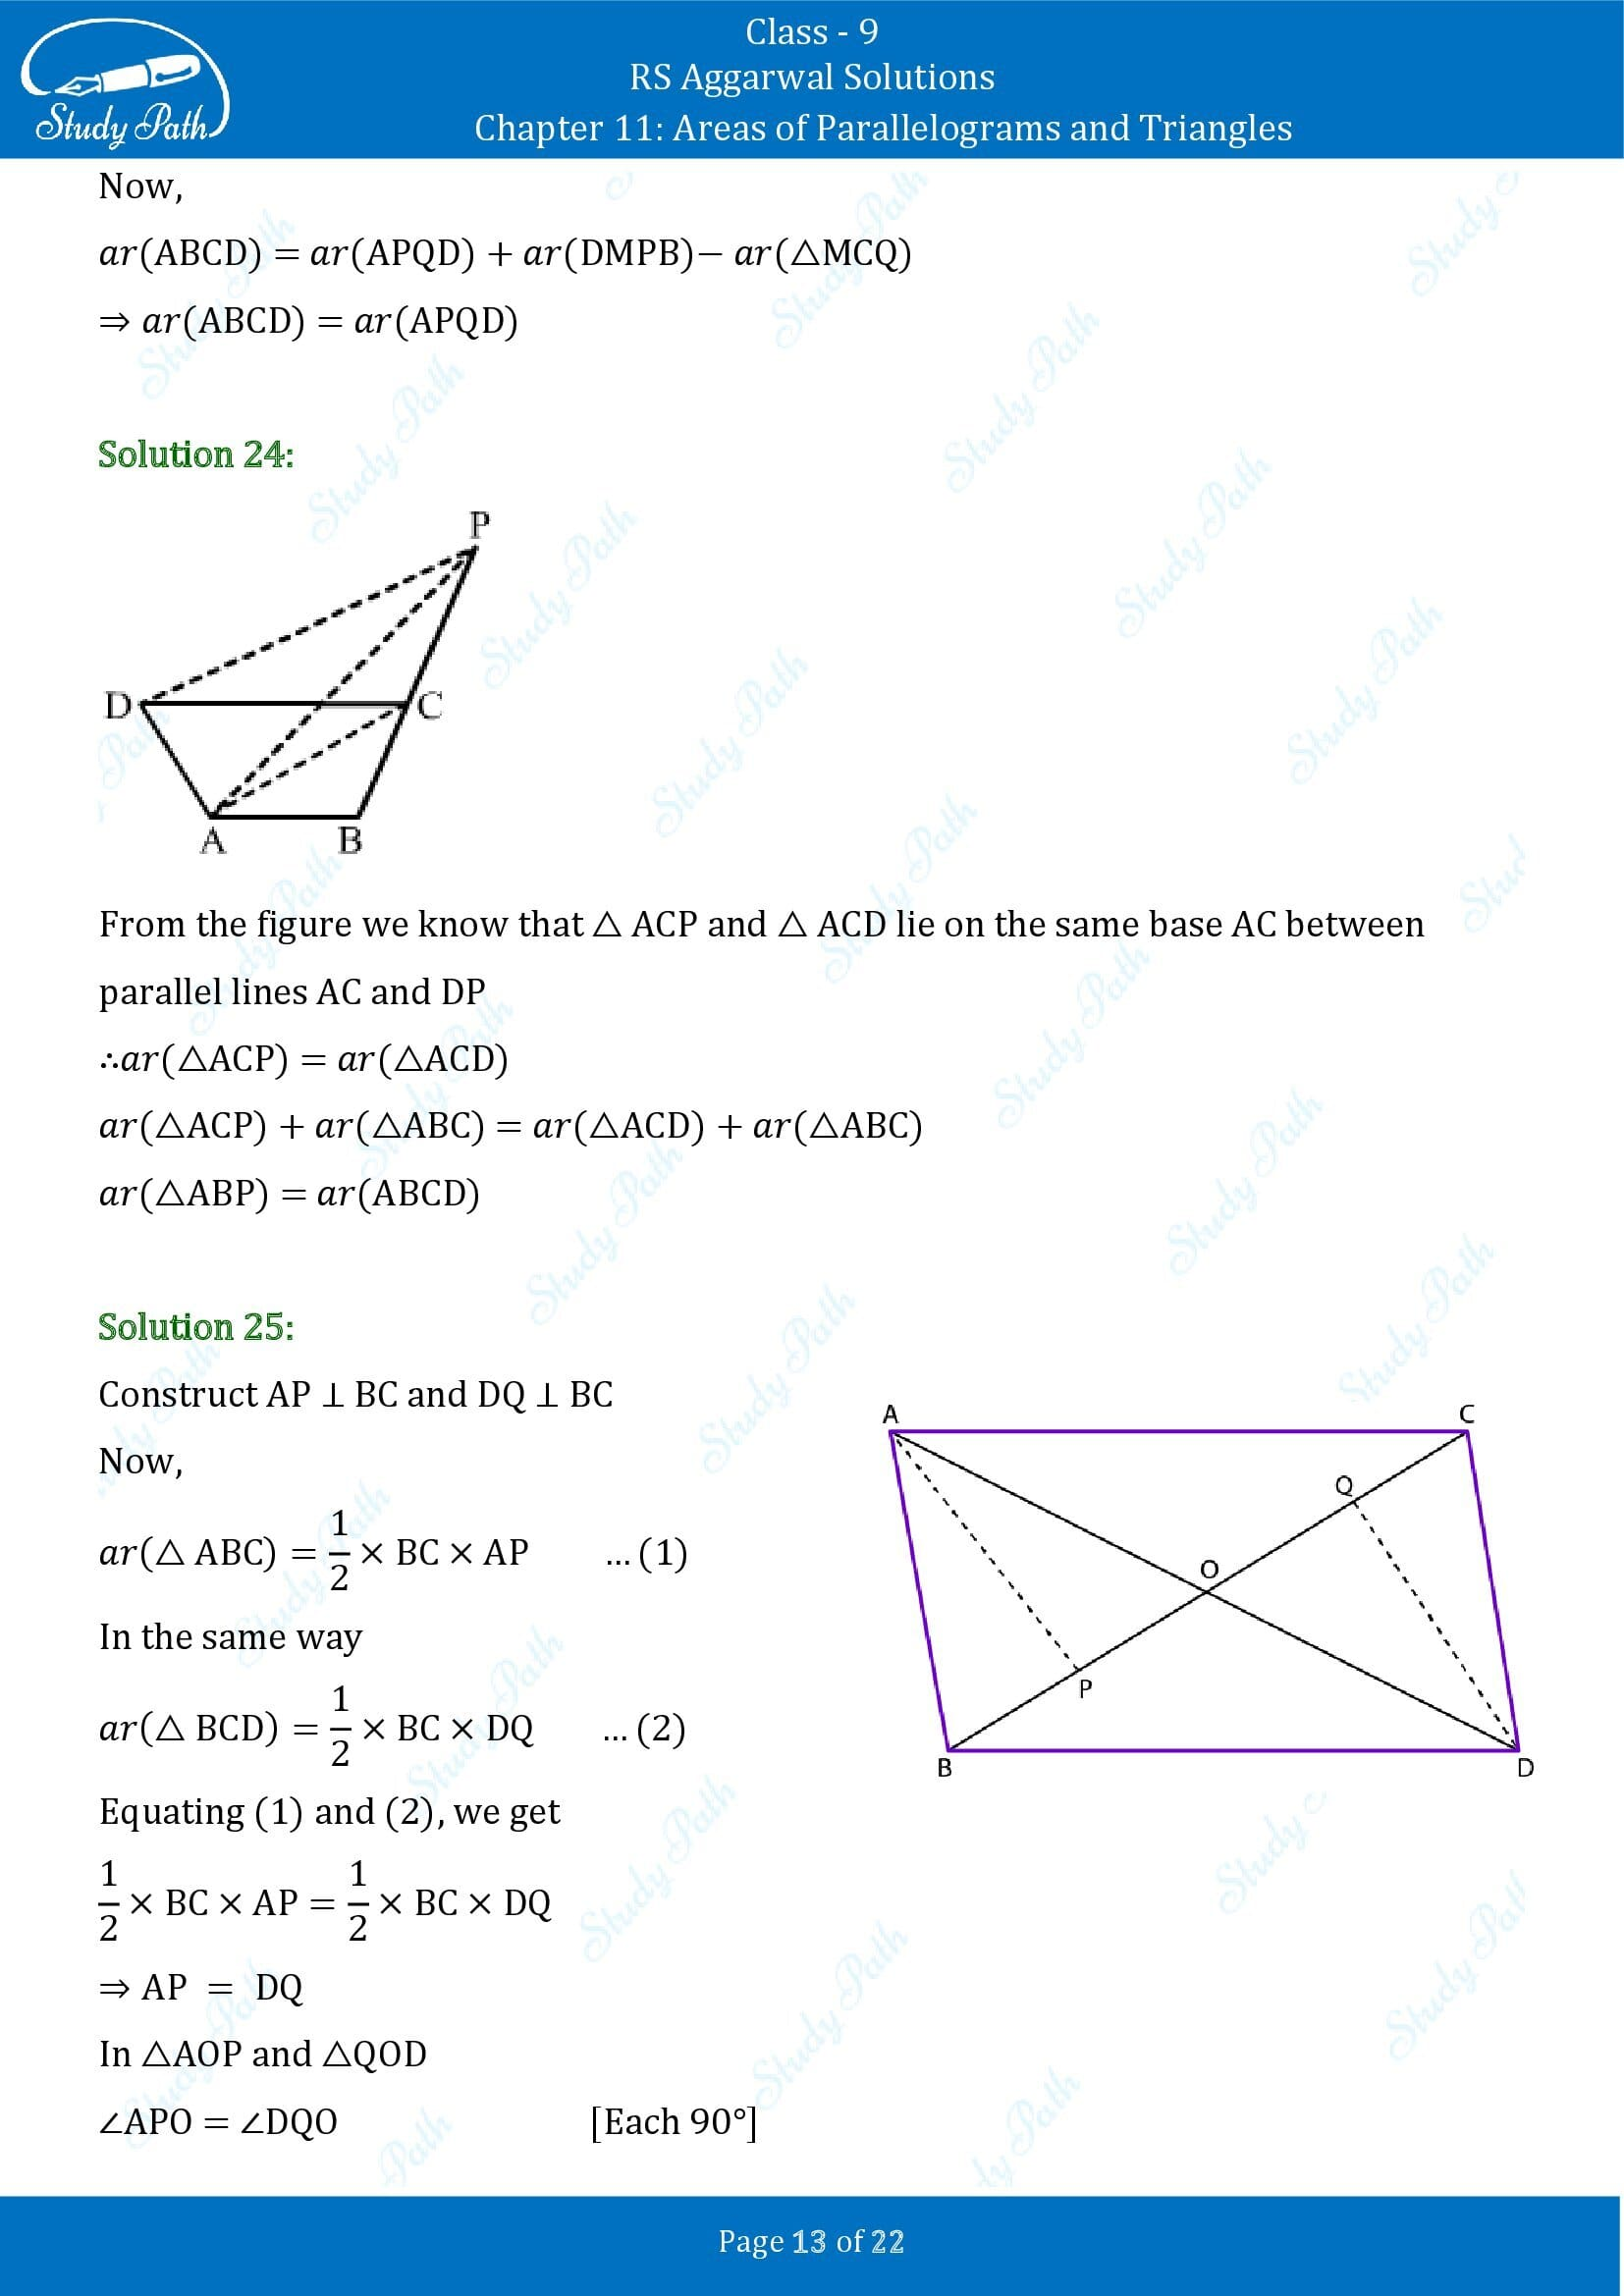 RS Aggarwal Solutions Class 9 Chapter 11 Areas of Parallelograms and Triangles Exercise 11 00013